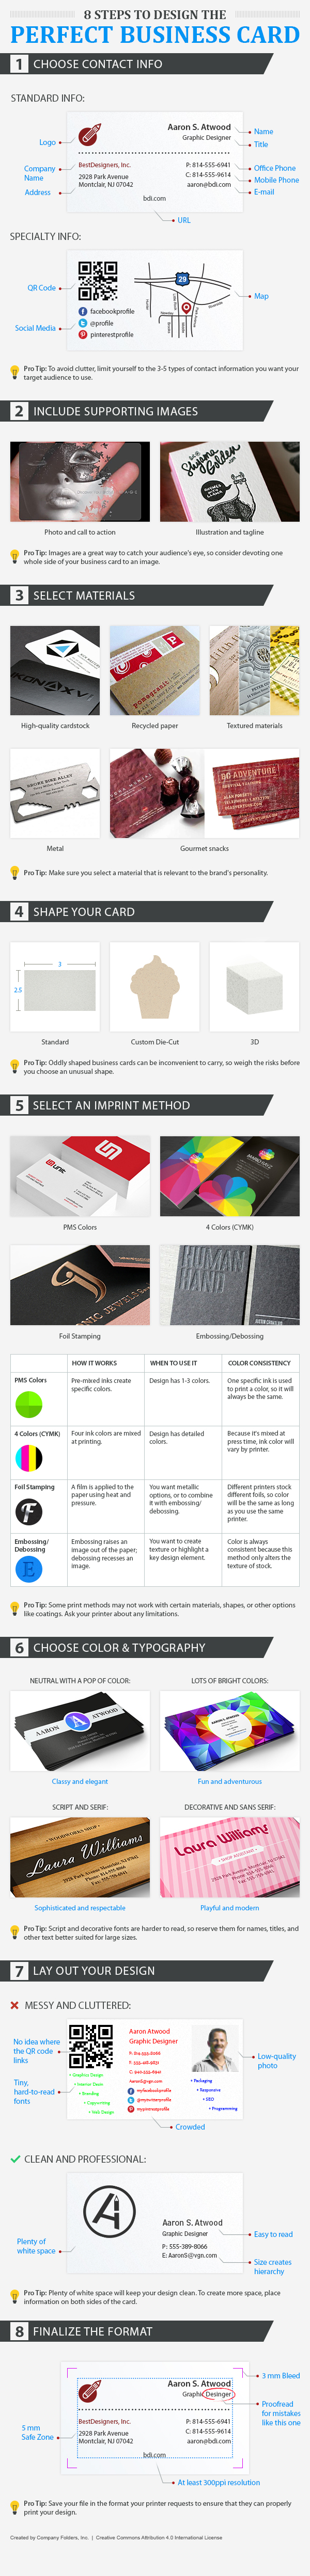 The 8 Elements of a Successful Business Card Design | Website ...